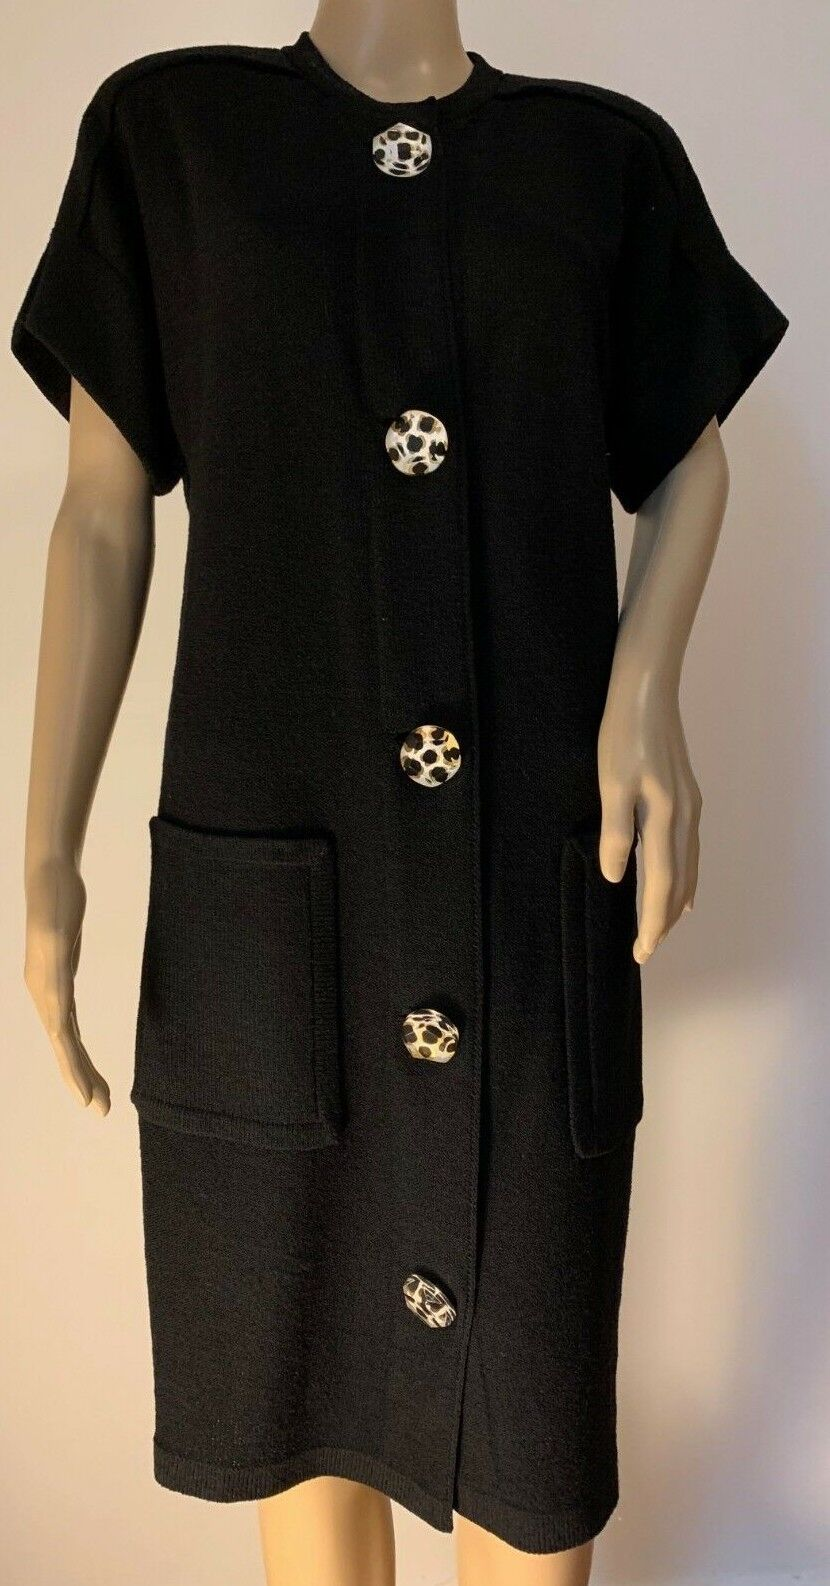 Vintage STEVEN FABRIKANT for SFA knit dress